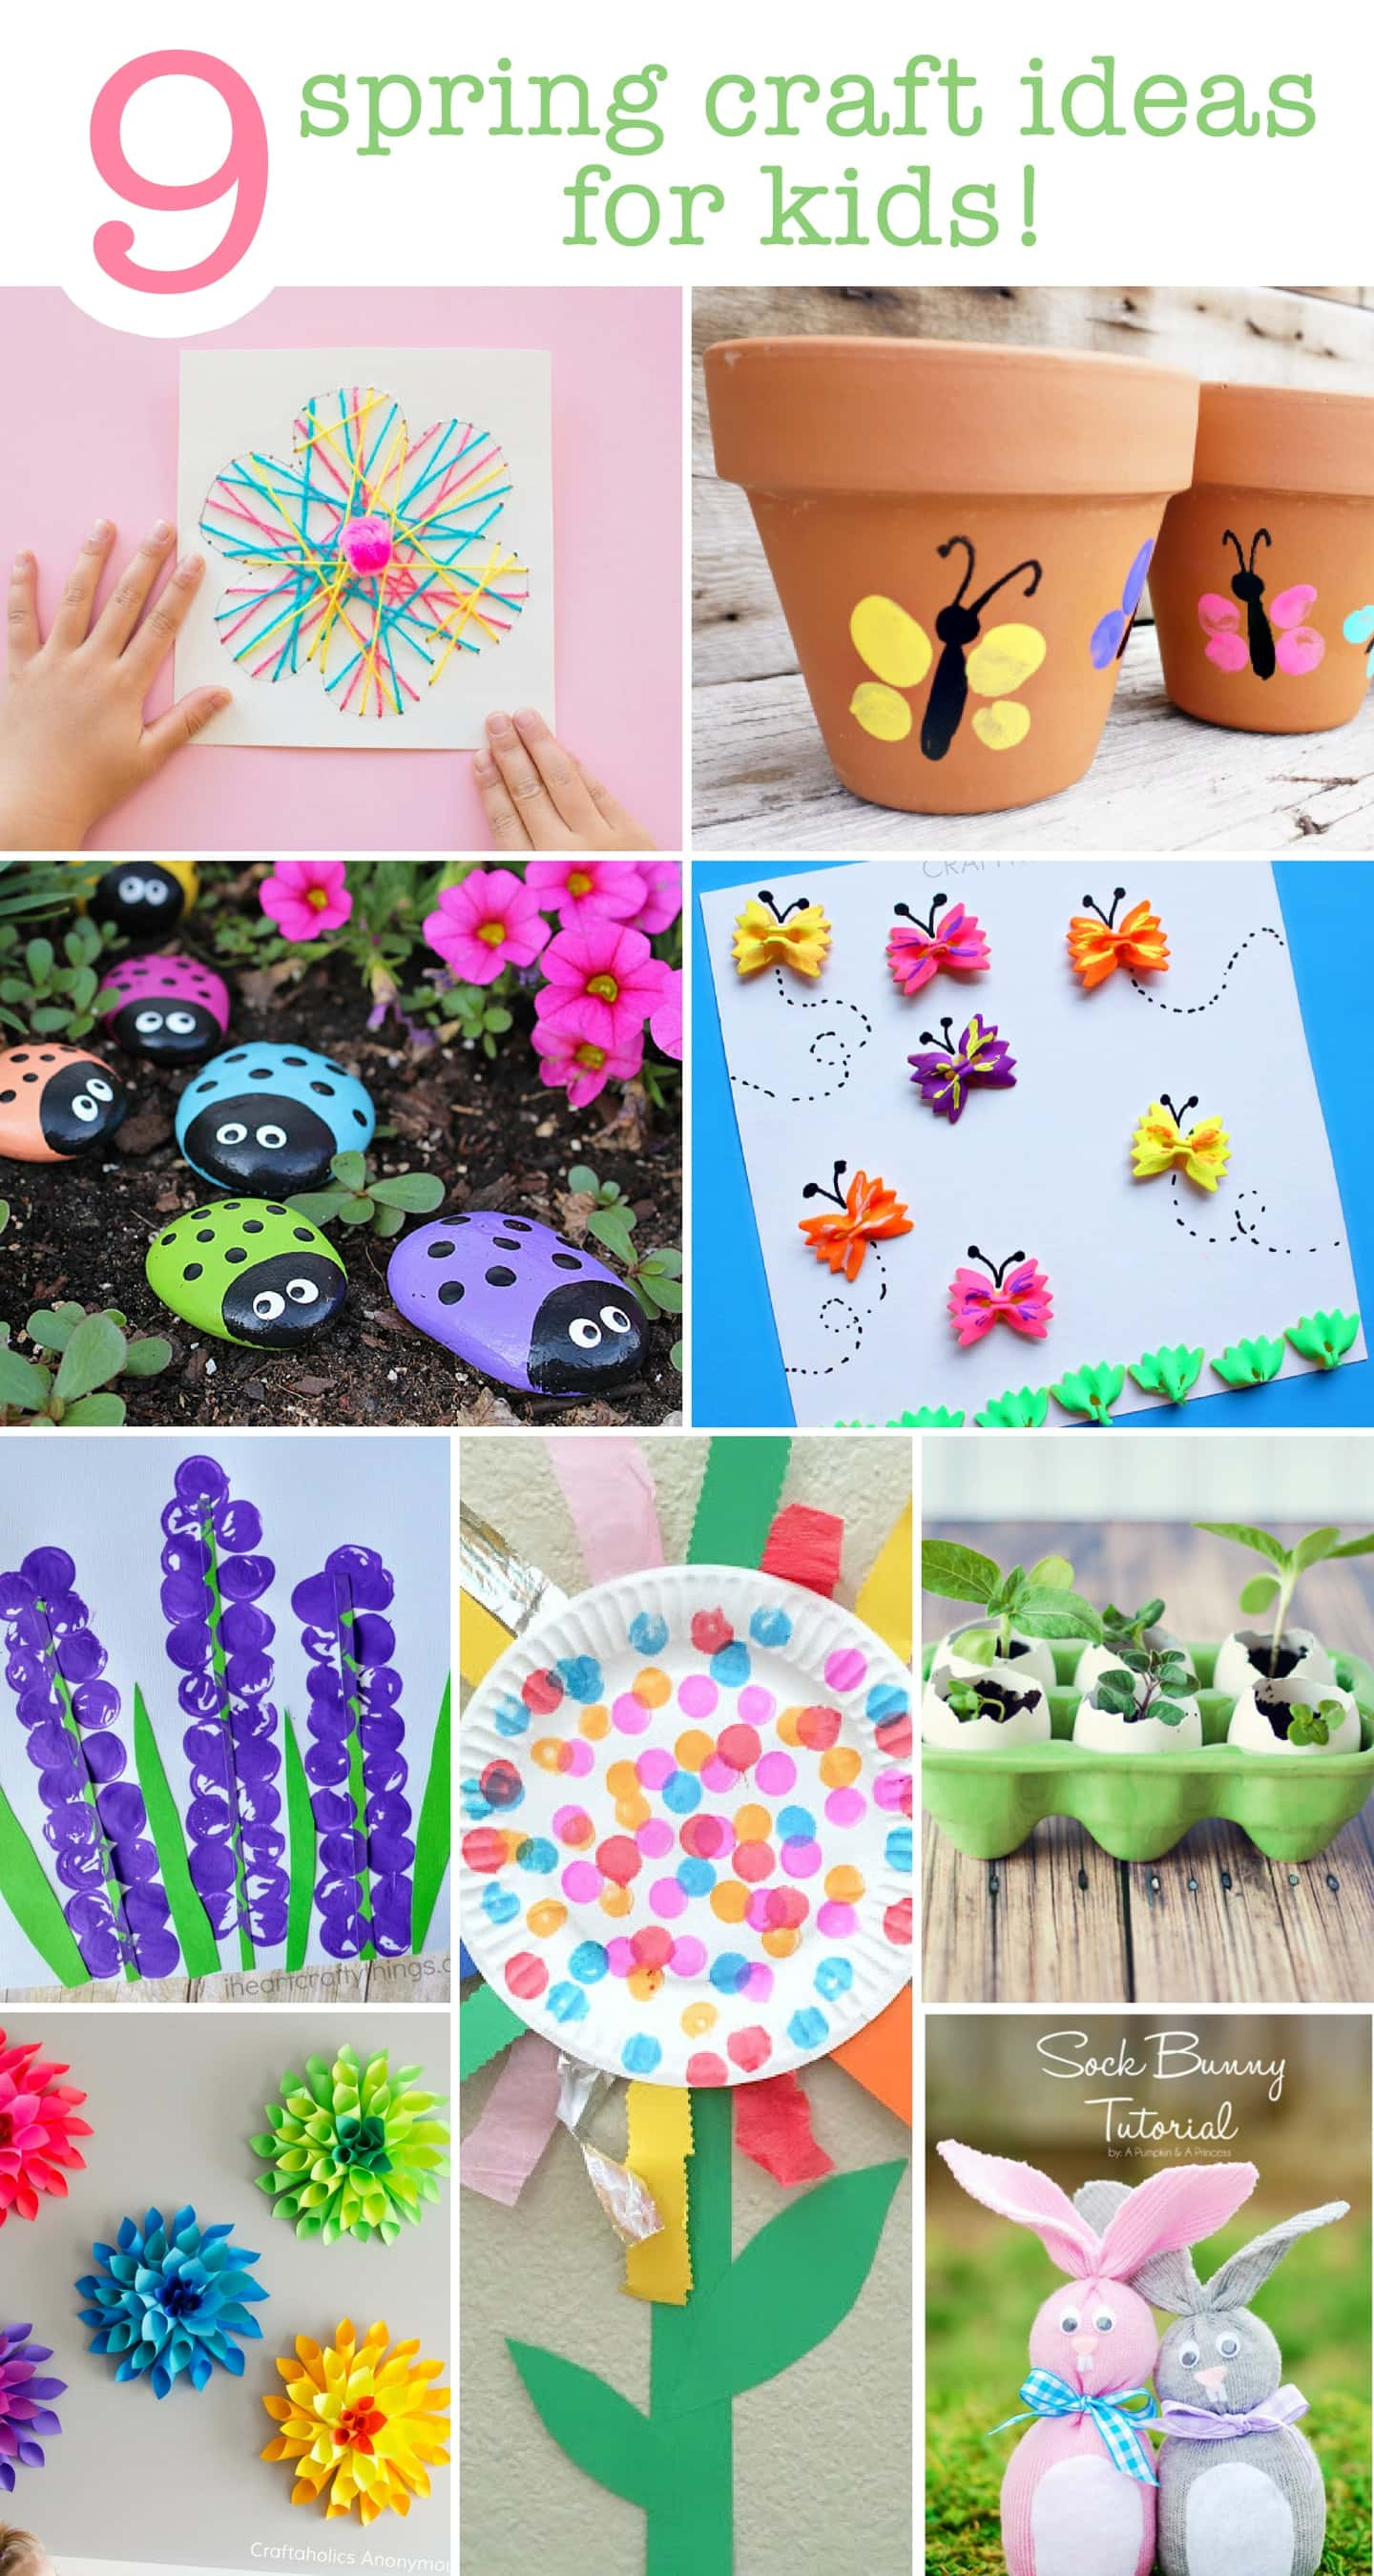 Cute spring craft ideas for the kids (toddlers too)! Great list for those rainy days!